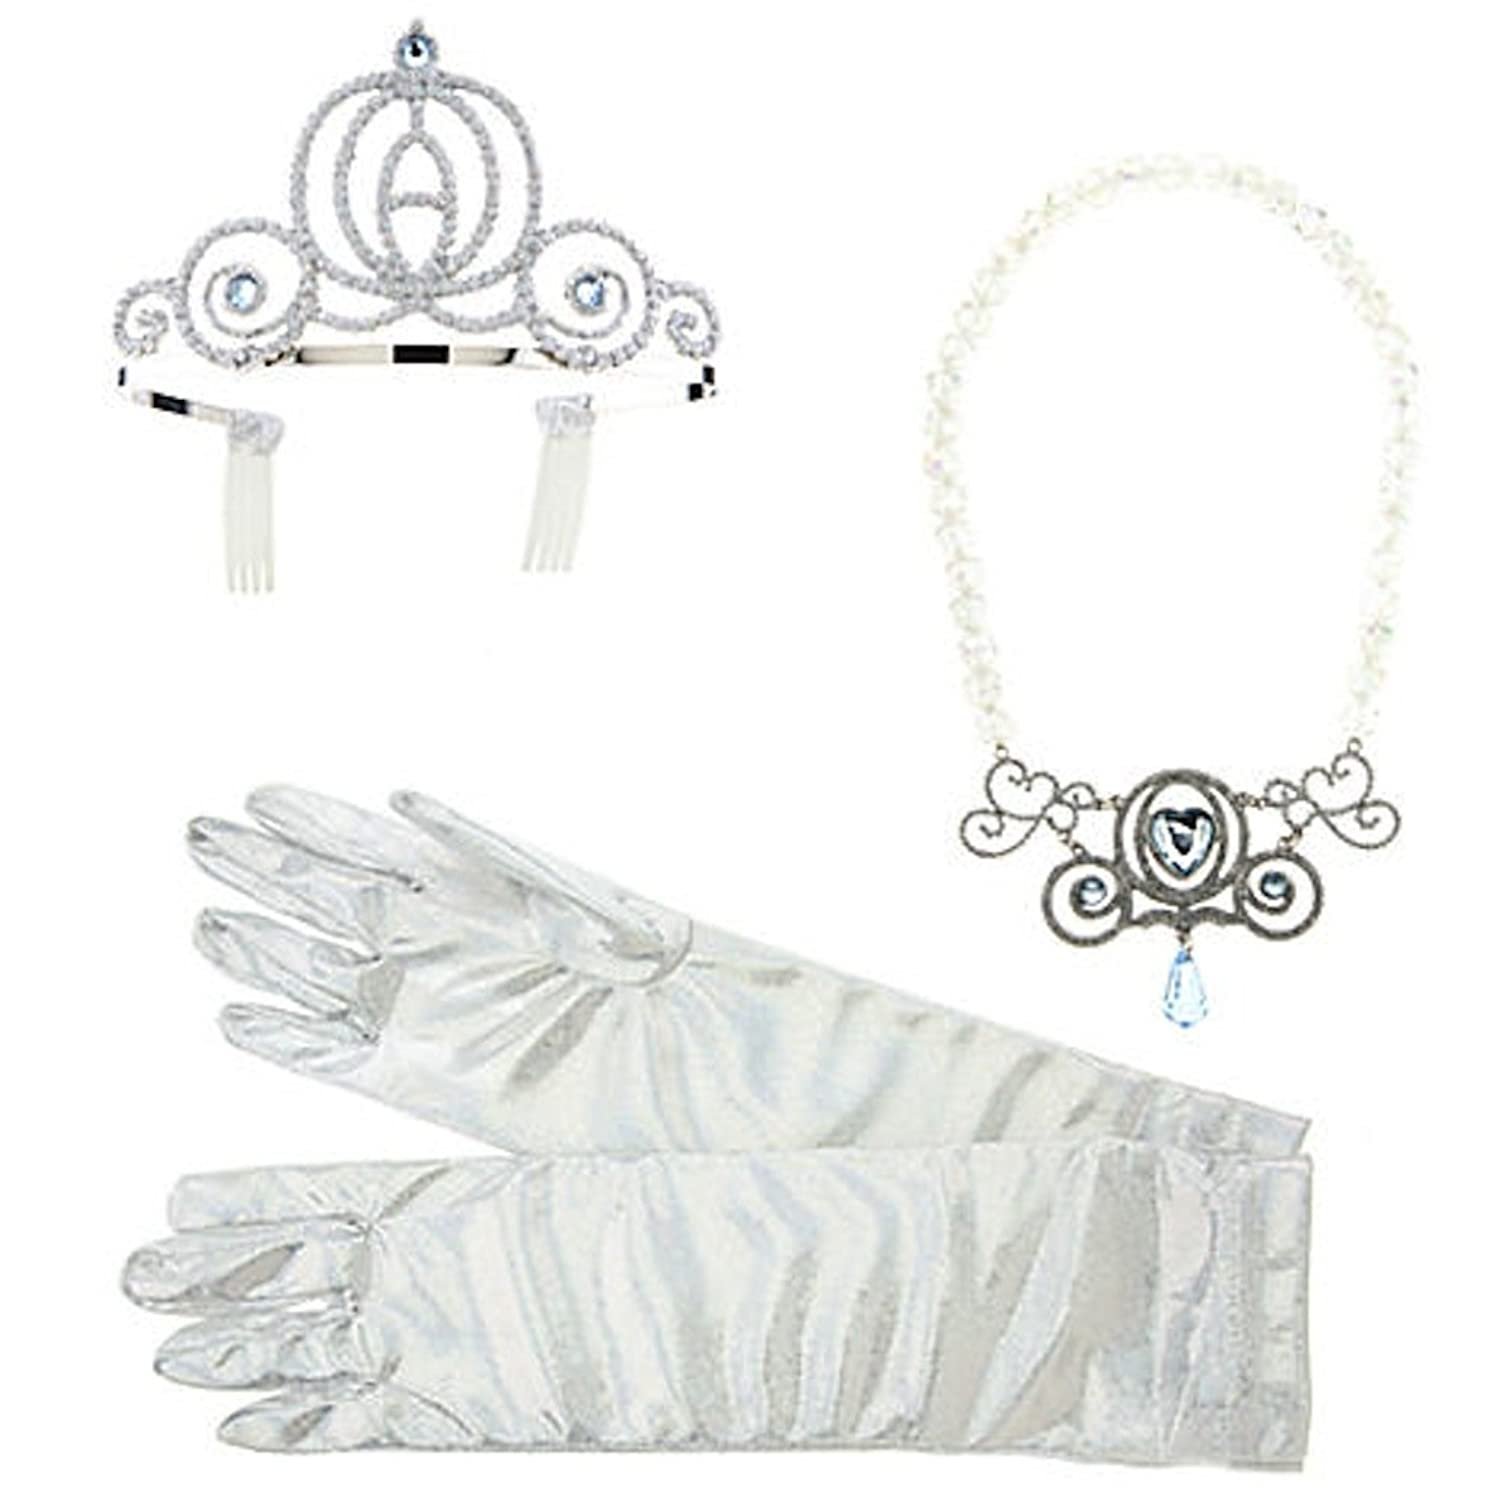 Amazon.com Disney Deluxe Cinderella Costume Accessory Set Necklace Crown Tiara Clothing  sc 1 st  Amazon.com & Amazon.com: Disney Deluxe Cinderella Costume Accessory Set Necklace ...